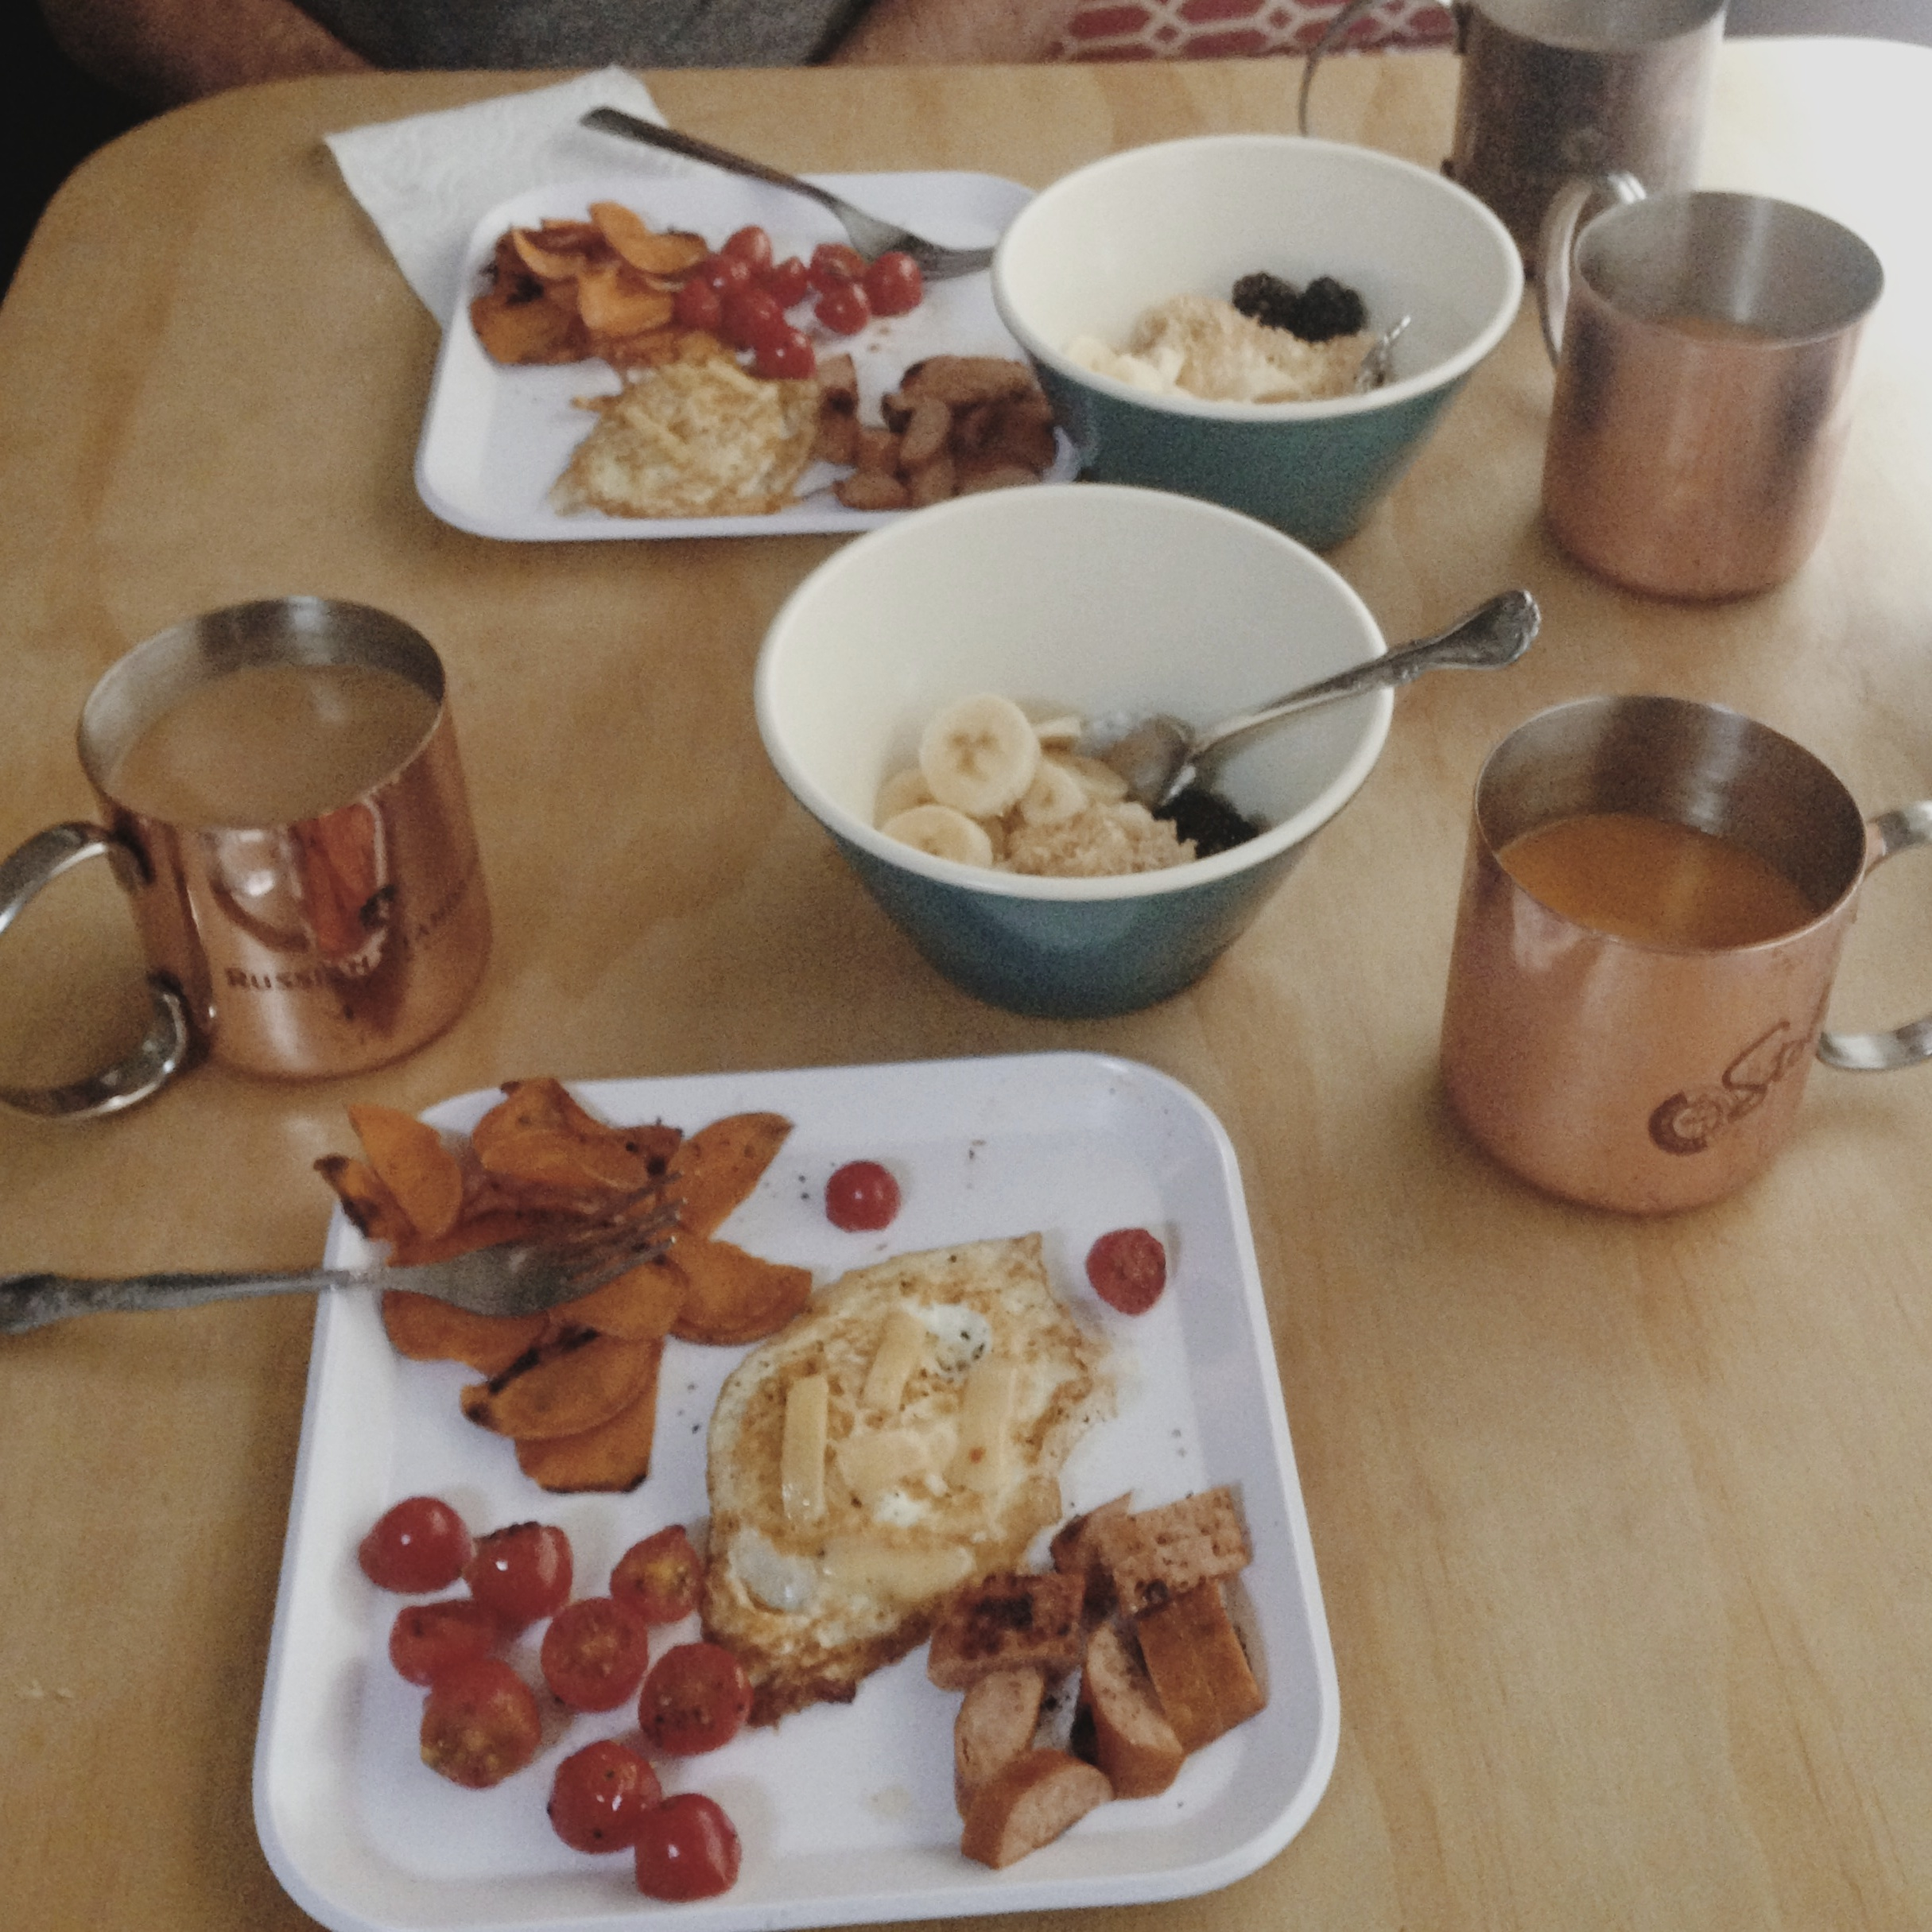 Breakfast  in the Dolphin.  Coffee, of course, OJ, steel cut outs with fruit, eggs and what looks like leftovers (sausage, sweet potato home fries and tomatoes).